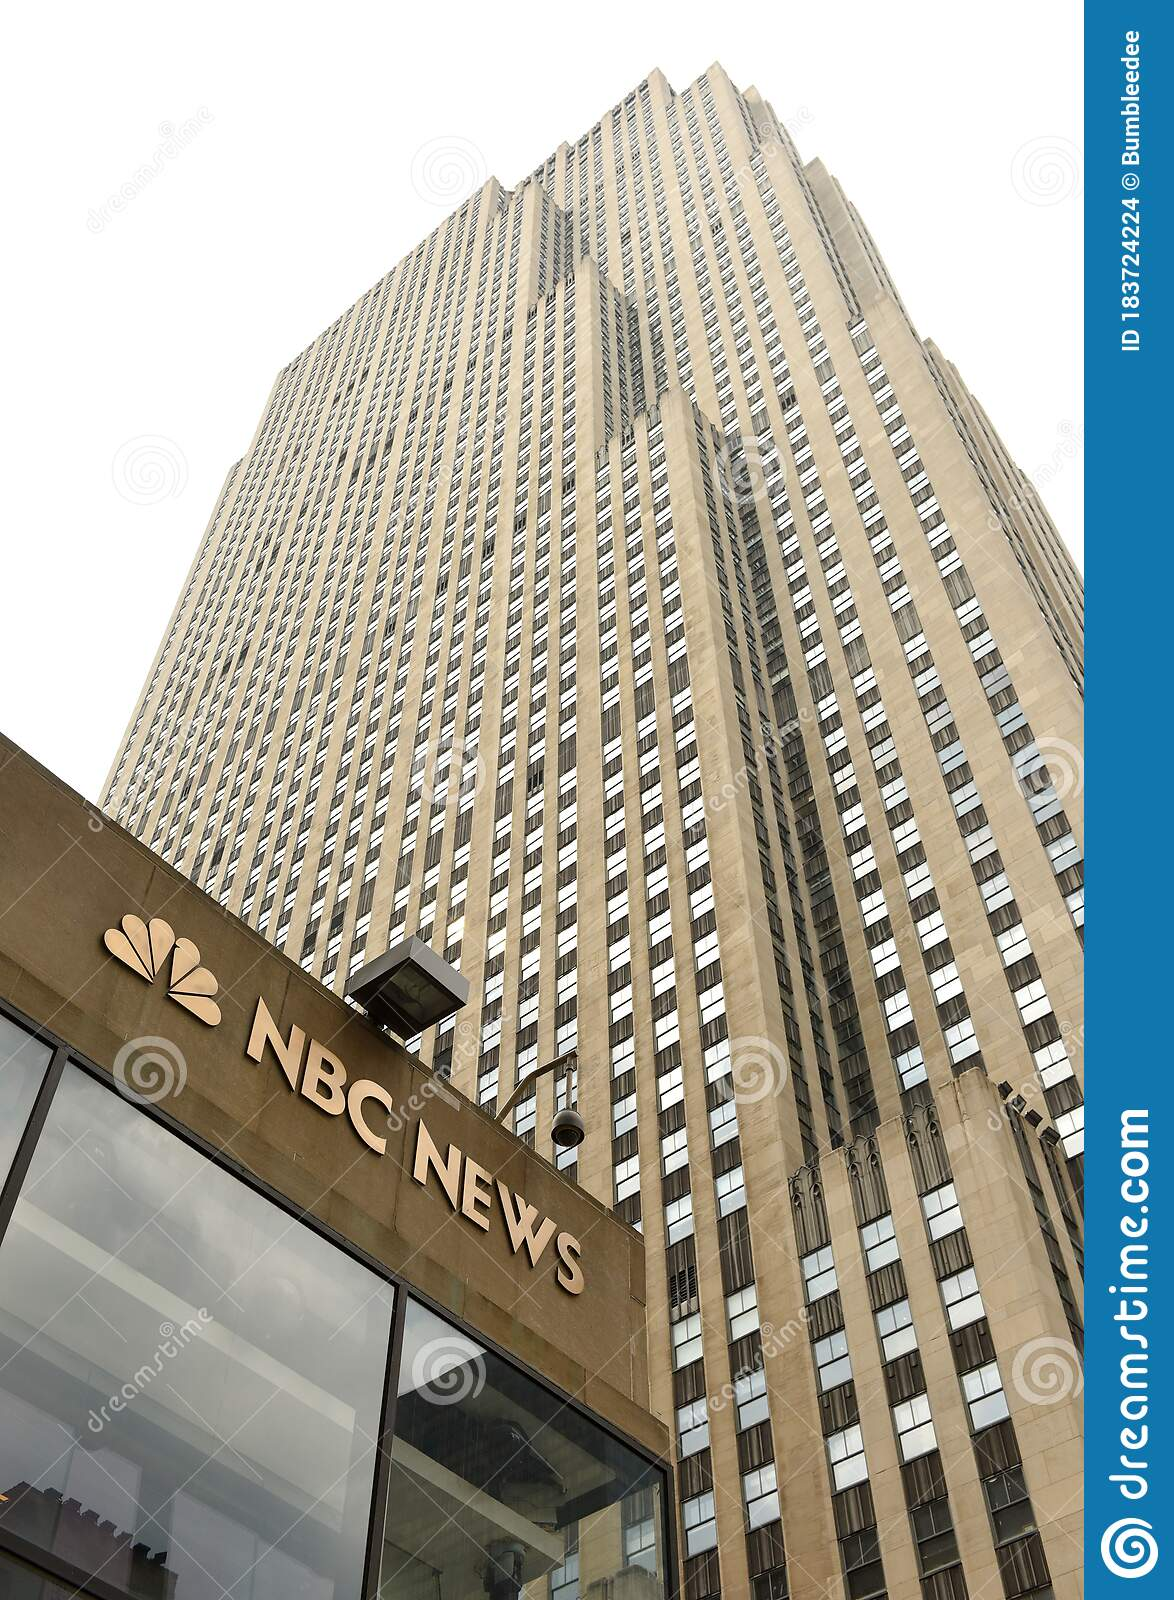 New York Usa May 26 2018 Nbc Studios In The Historic 30 Rockefeller Plaza In New York City Editorial Stock Image Image Of News America 183724224